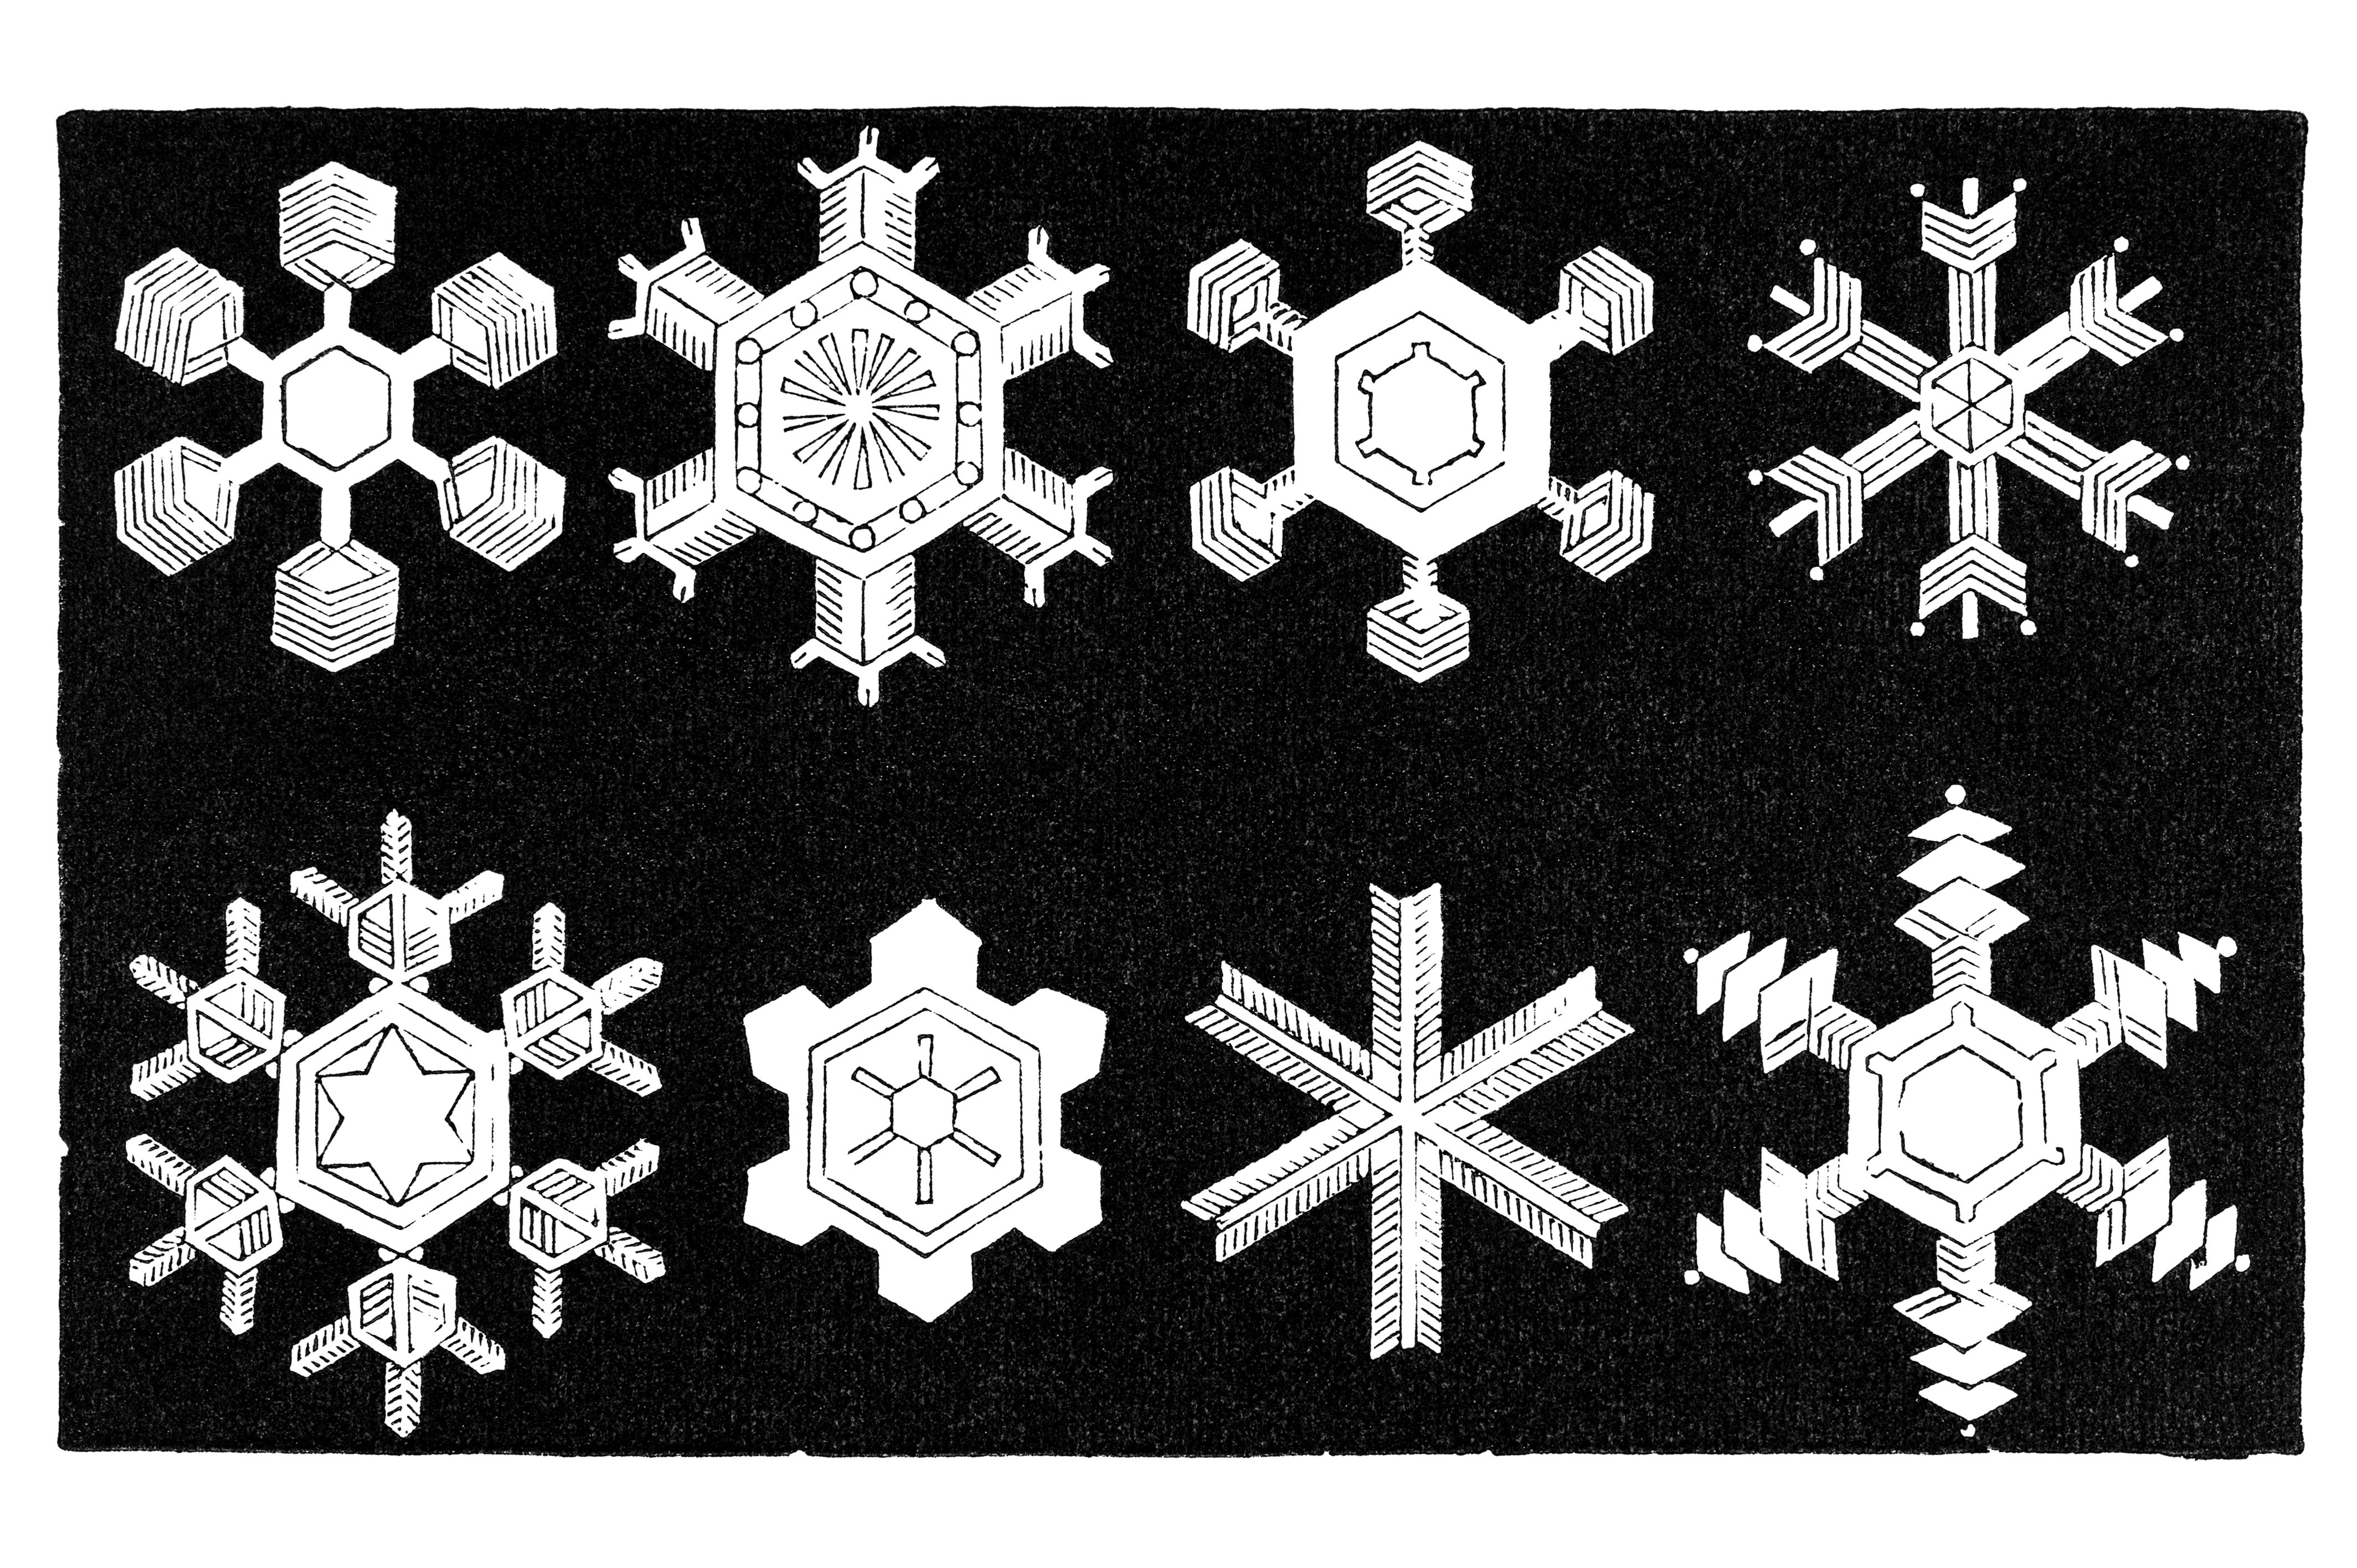 The shape of a snowflake depends on the temperature at which it formed.